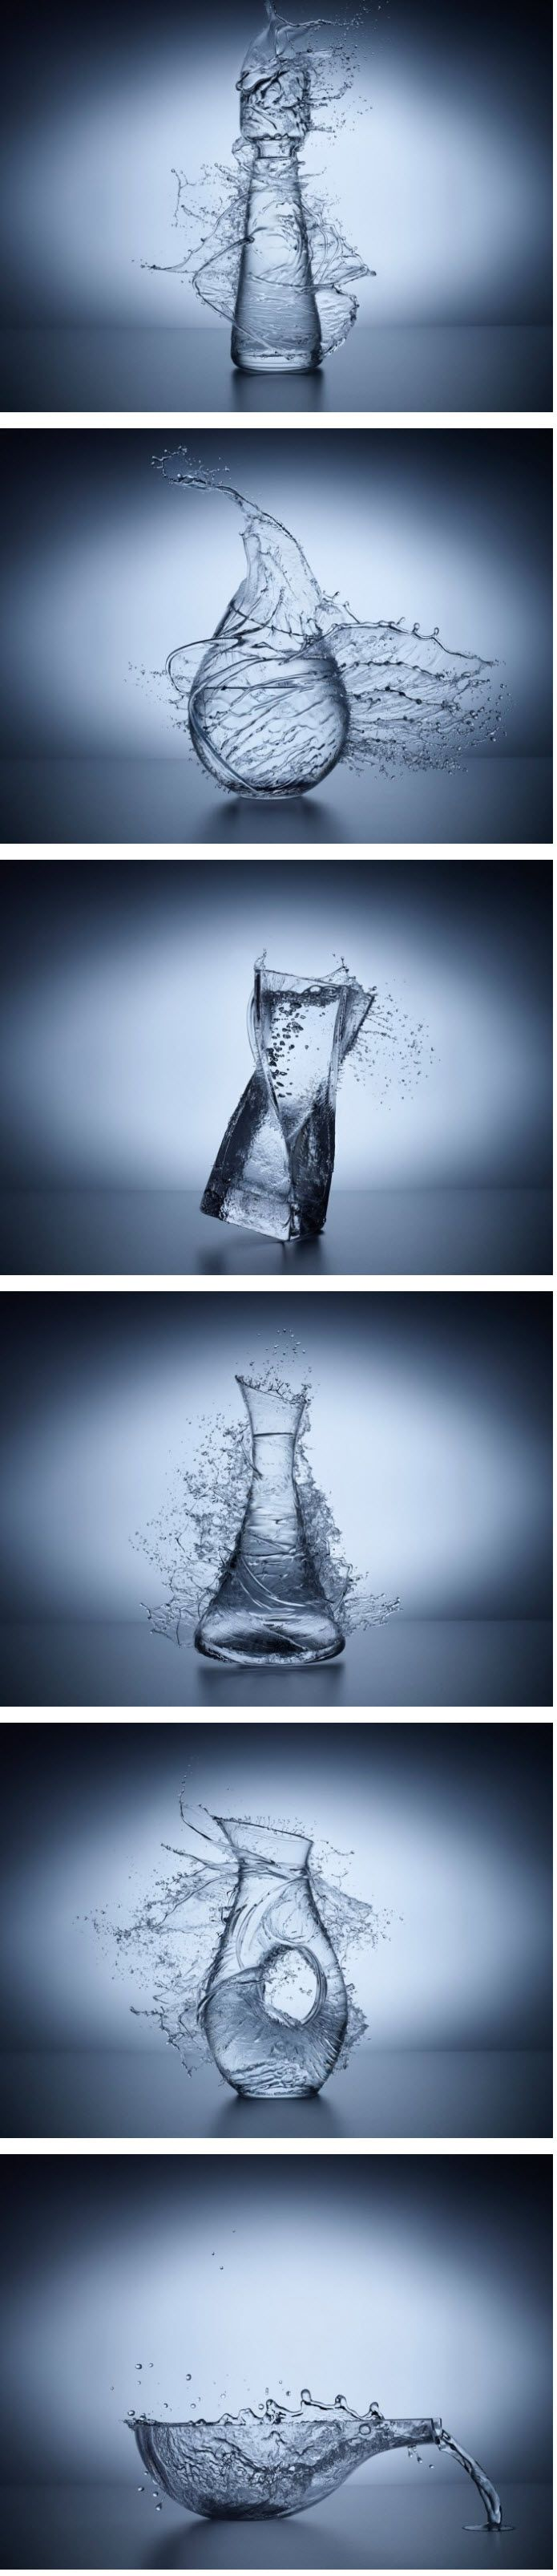 Jean Bérard. A highly conceptual photographer based out of Mexico.  This Liquid Glass series fools the eye in a unique and crafty way. The process is in a matter of strategic splashes of water that forms around the glass object. Http://www.jbfotografia.com